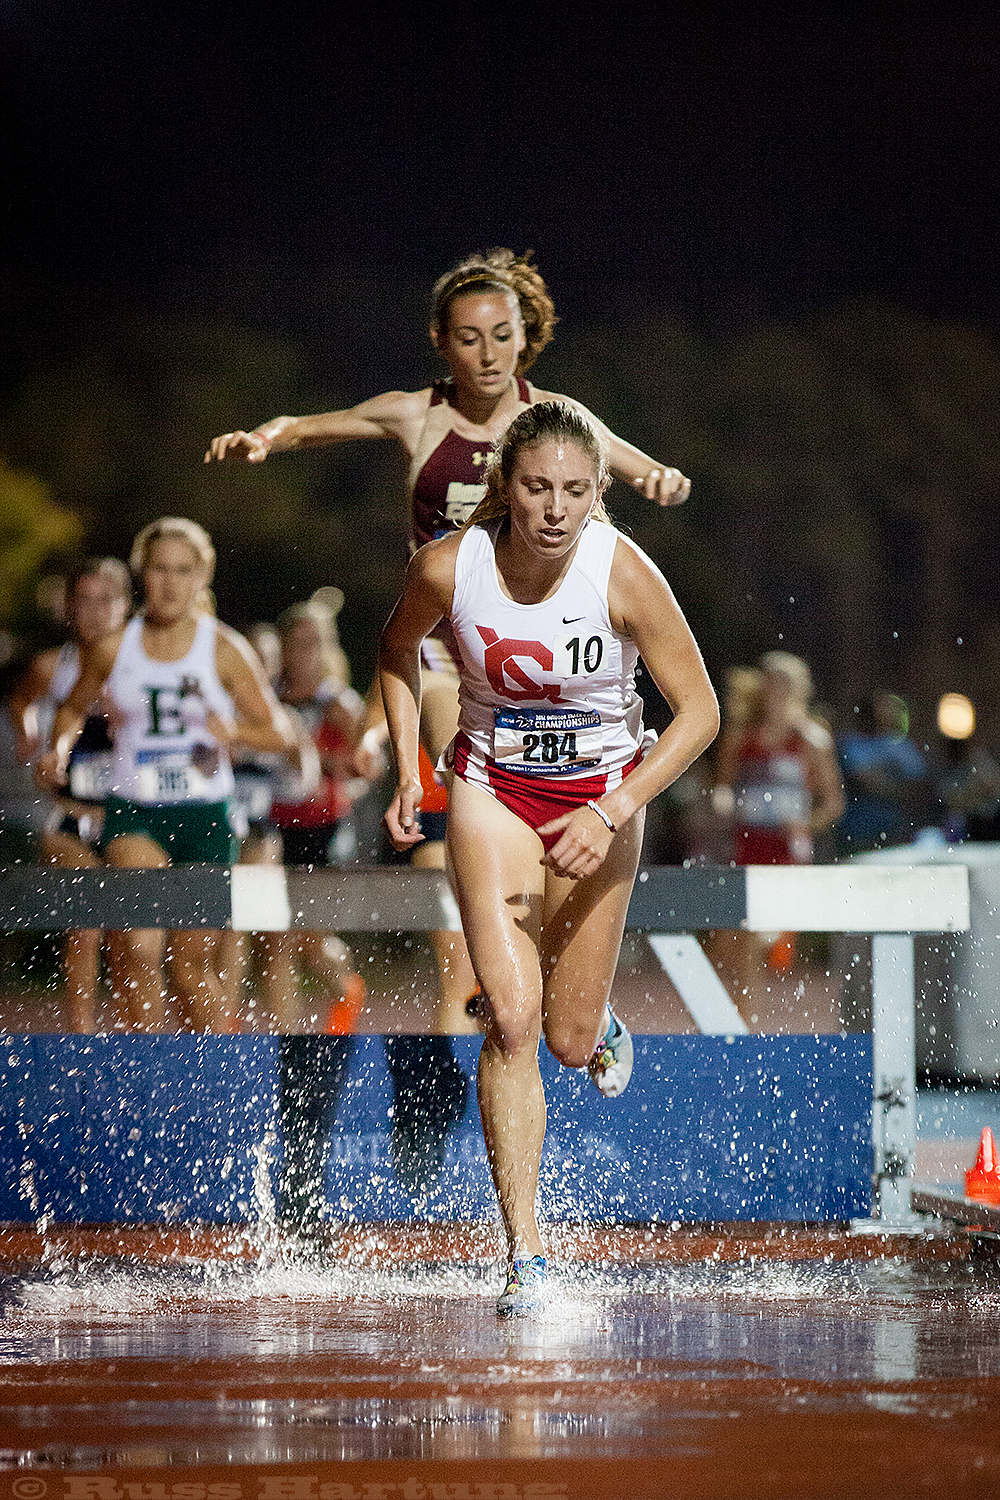 Genna Hartung clearing the water hurdle at the 2012 NCAA Division 1 Regional Championships in Jacksonville, Florida.